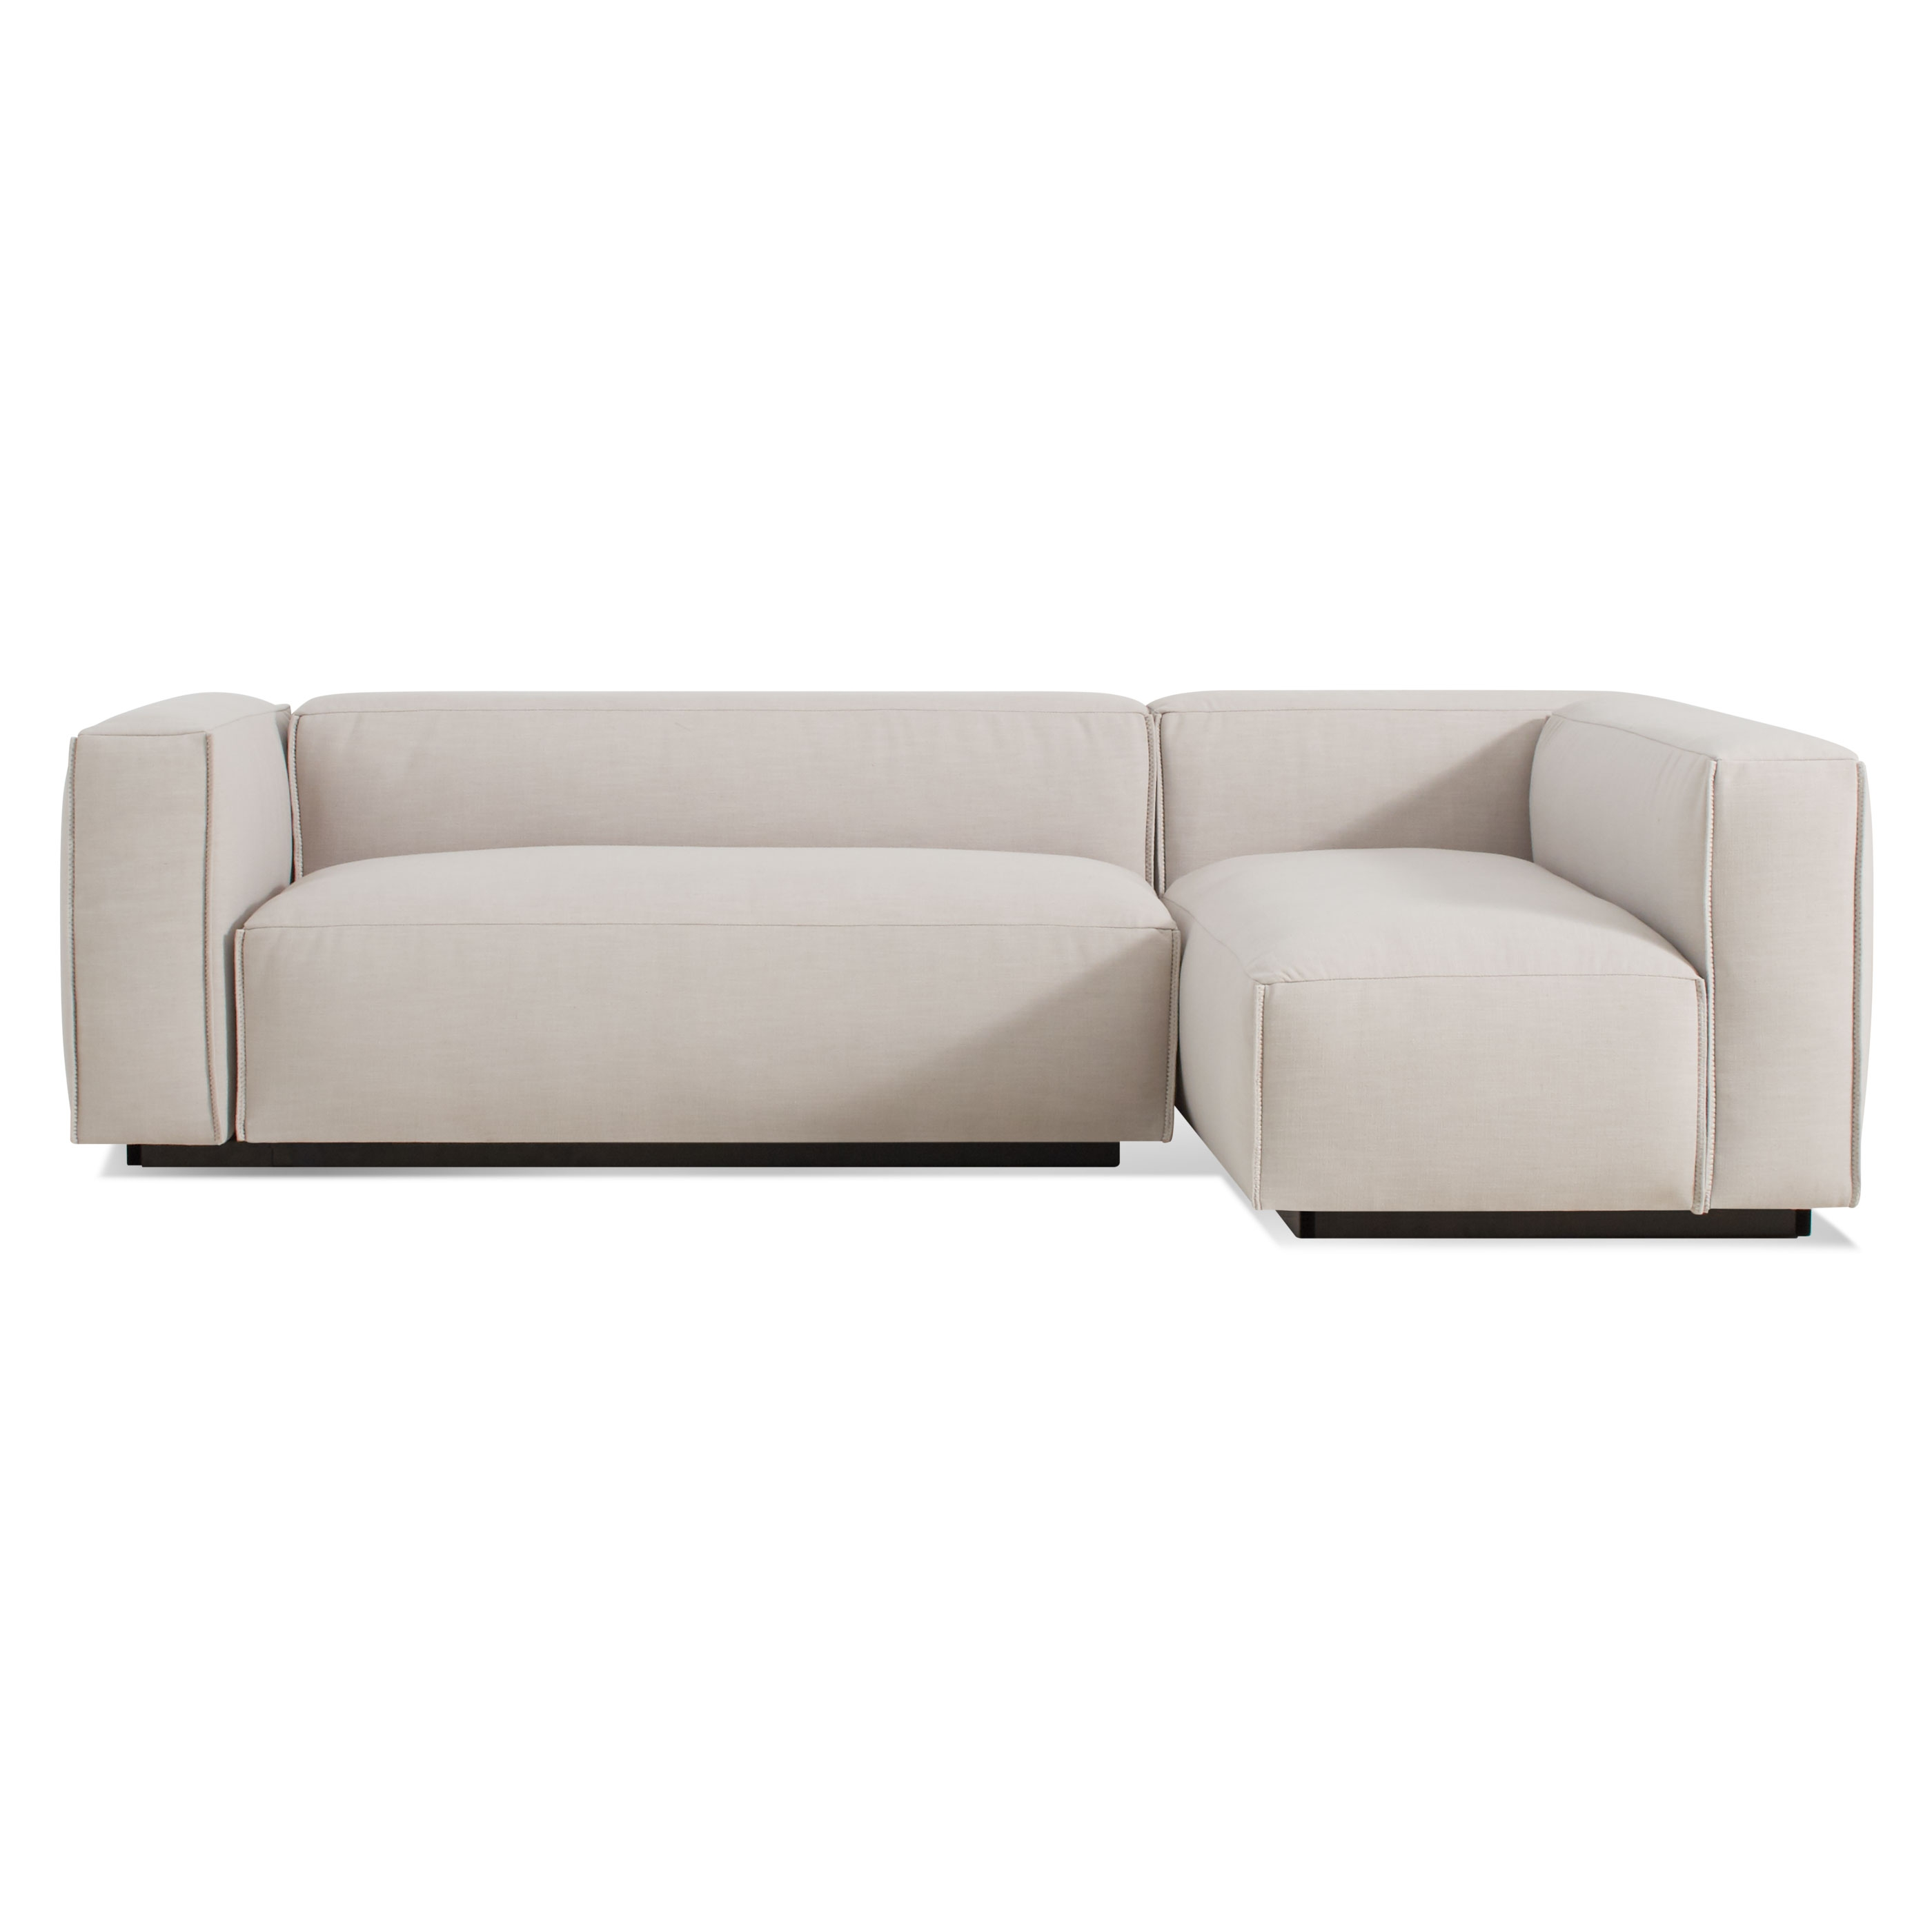 Cleon Small Modern Sectional Sofa Blu Dot Intended For Small Sectional Sofa (Image 1 of 15)